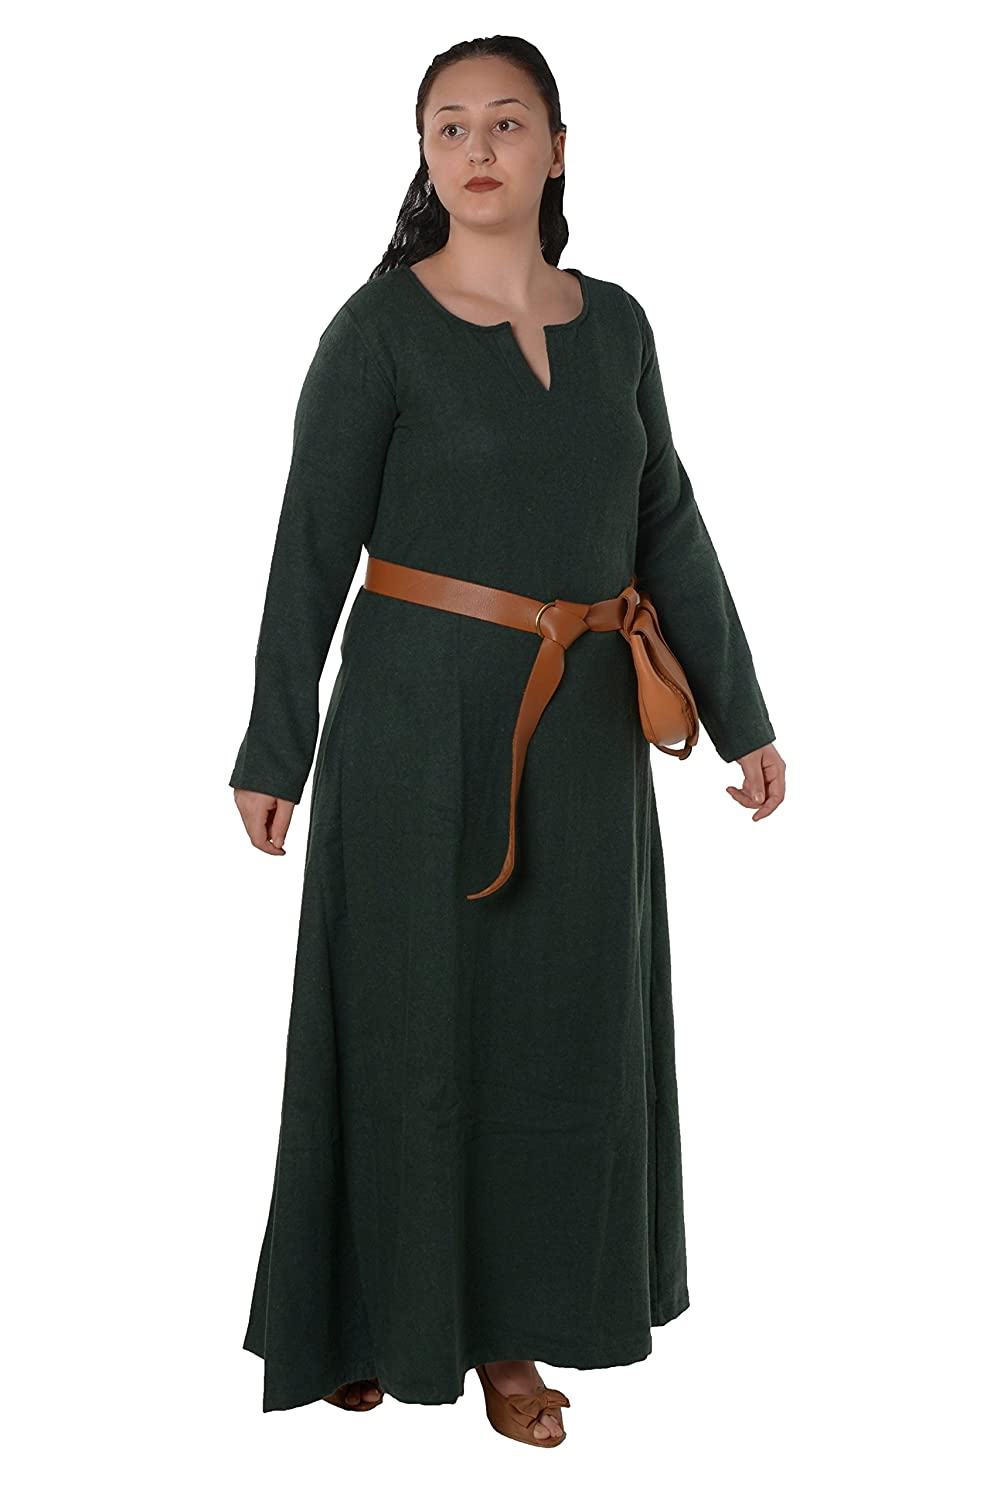 Medieval Peasant Womanu0027s Green Wool Dress Costume - DeluxeAdultCostumes.com  sc 1 st  Deluxe Theatrical Quality Adult Costumes & Renaissance Serving Wench Peasant Women Costume Dresses | Deluxe ...